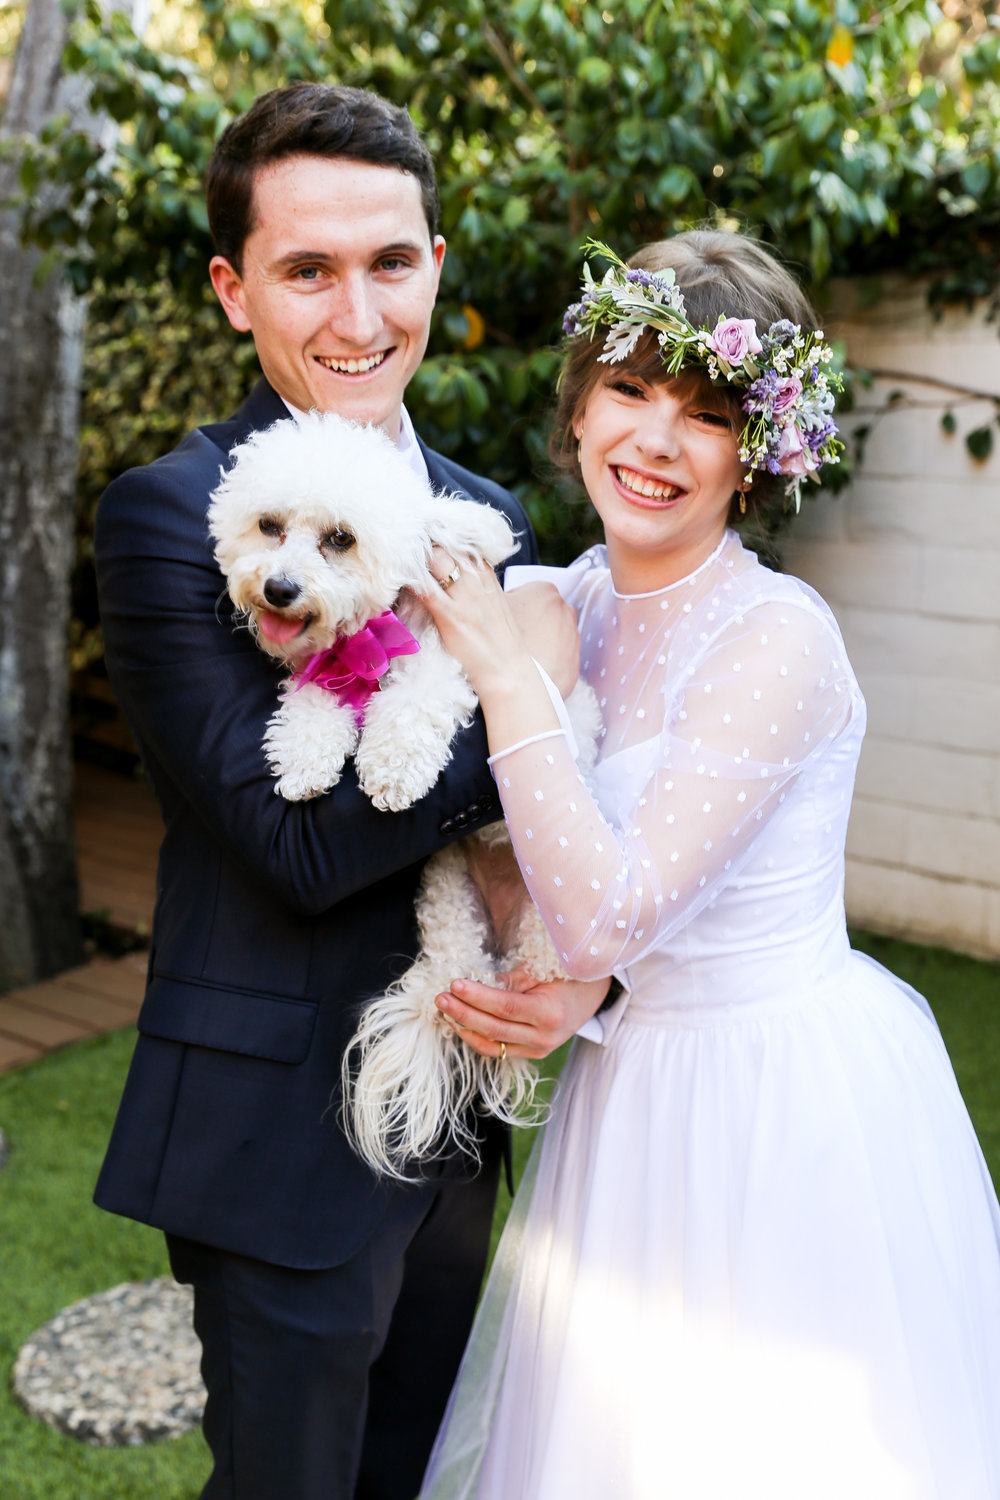 alexandra-rice-photography-monterey-wedding-bride-groom-dog-portrait.jpg